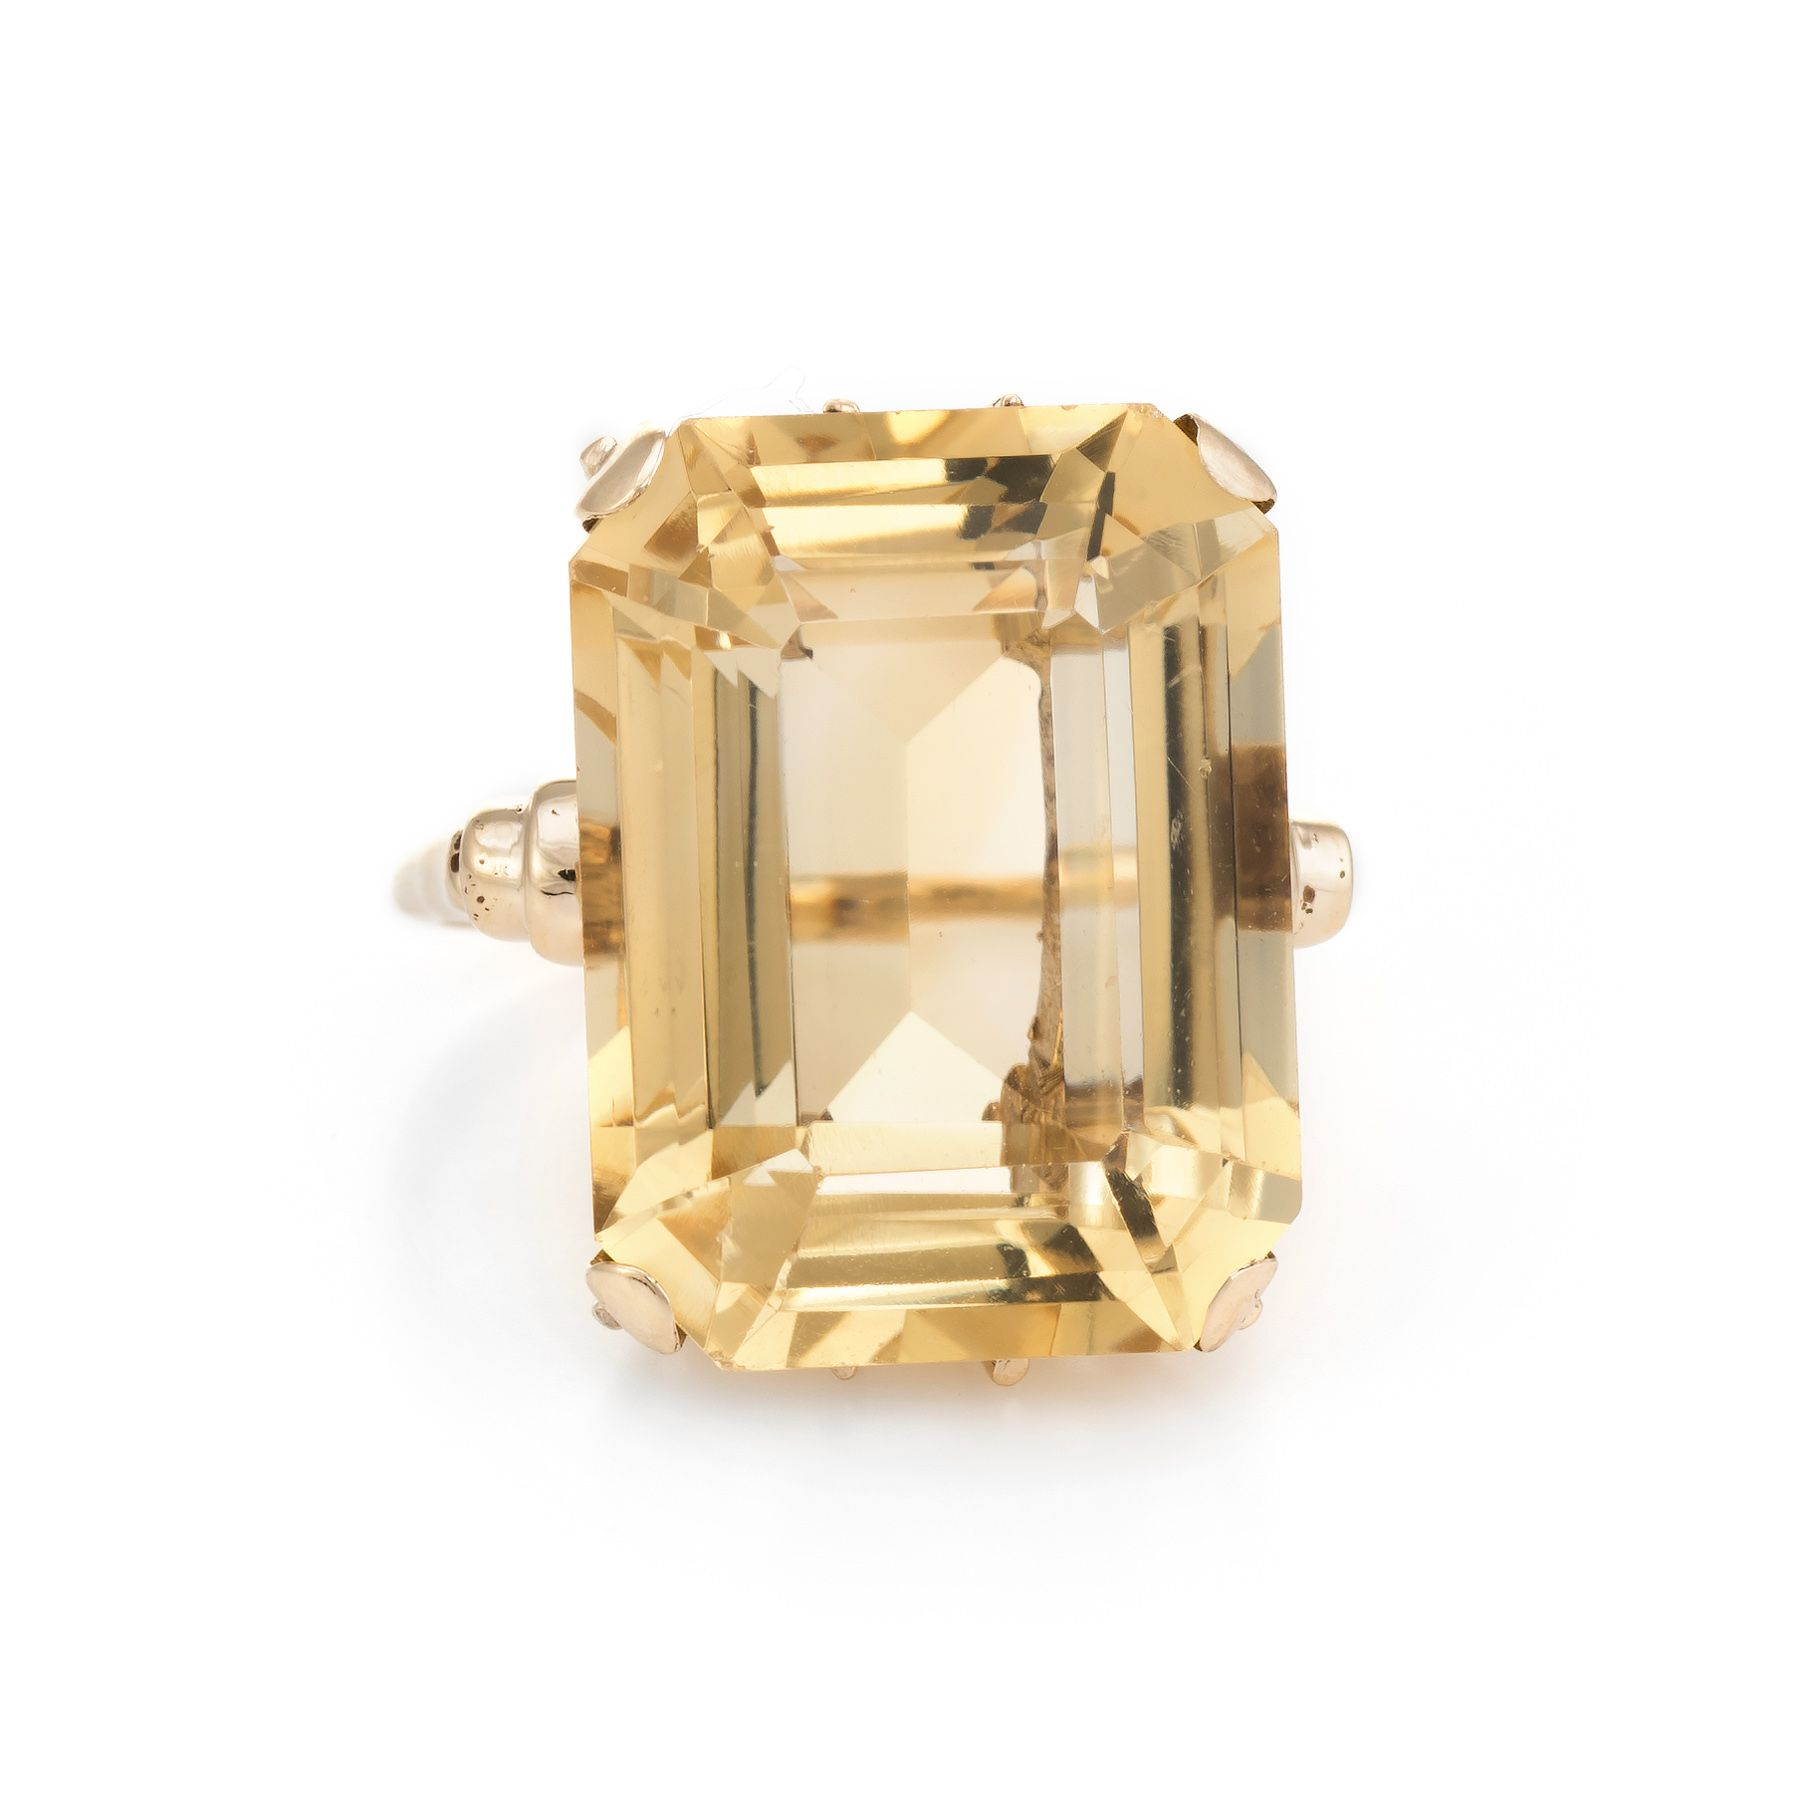 8f6f0c7e0e5f2 Vintage Citrine Cocktail Ring 9 Karat Yellow Gold Large Emerald Cut ...